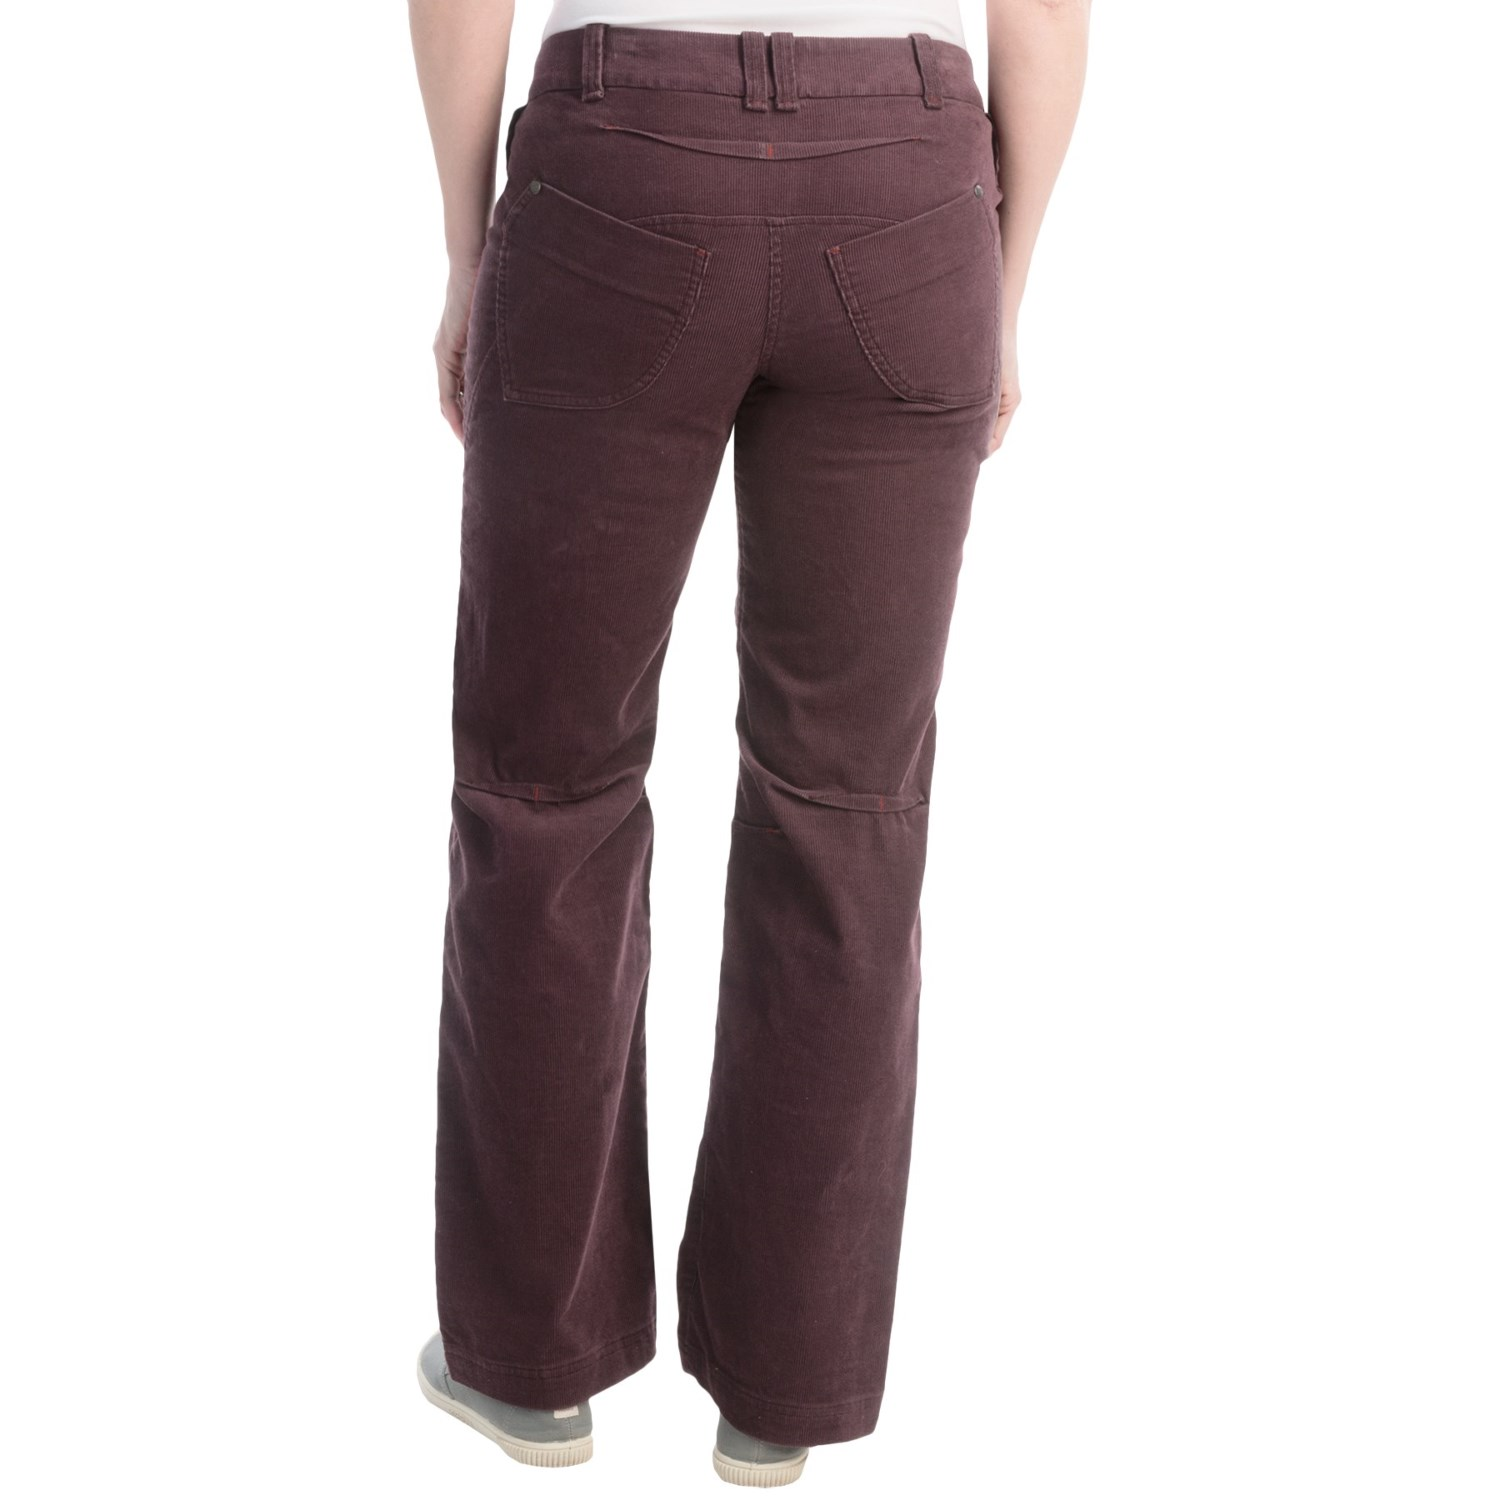 arcteryx-naely-corduroy-pants-relaxed-fit-for-women~a~9653v_4~1500.1.jpg